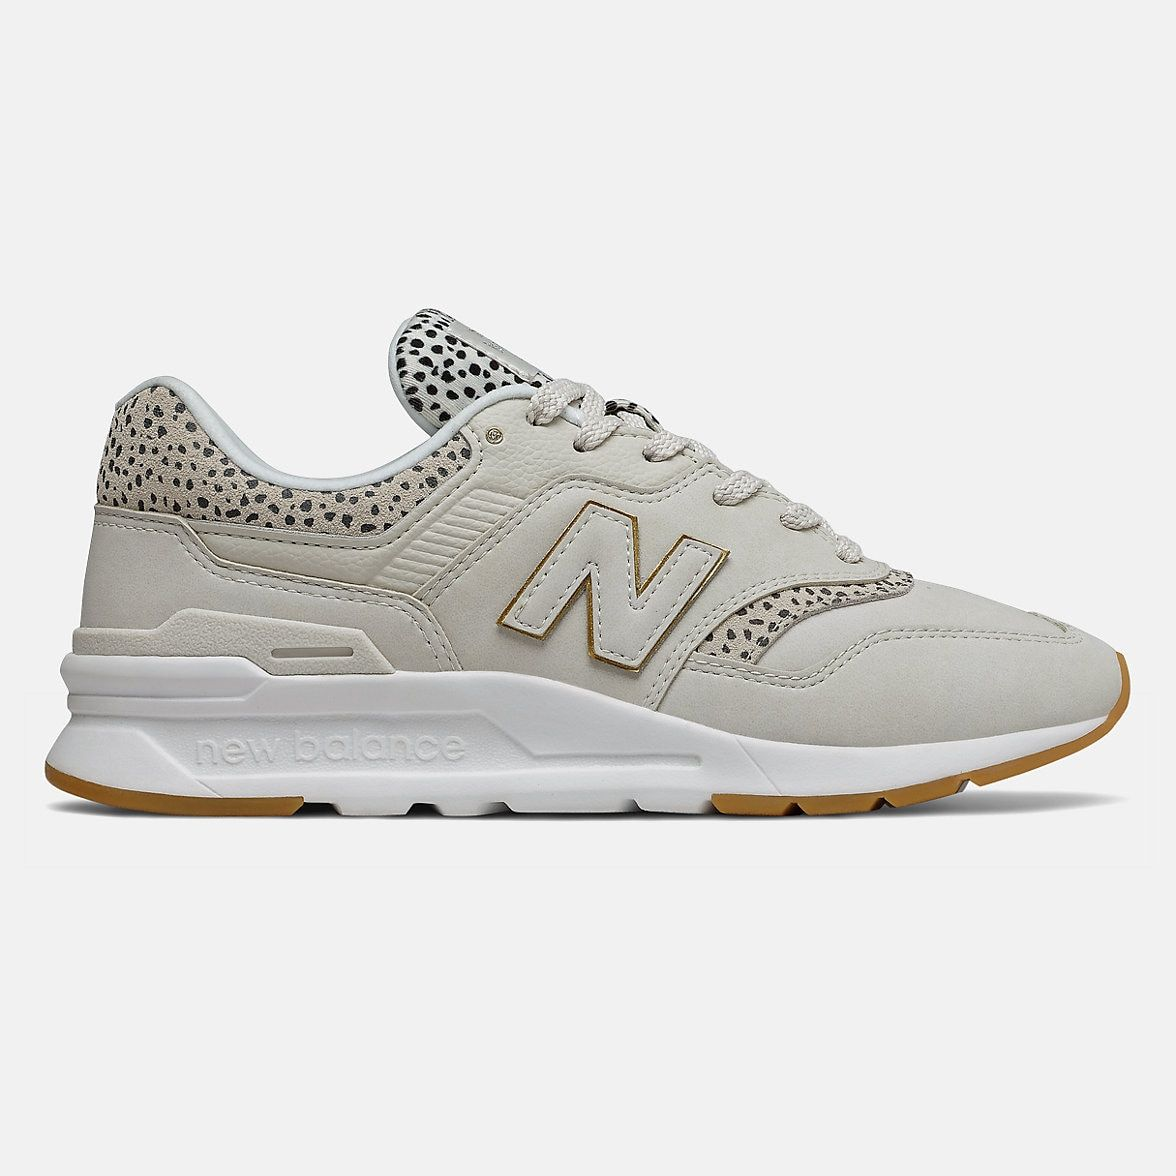 997h In 2020 New Balance Shoes Shoes Order New Balance Sneaker